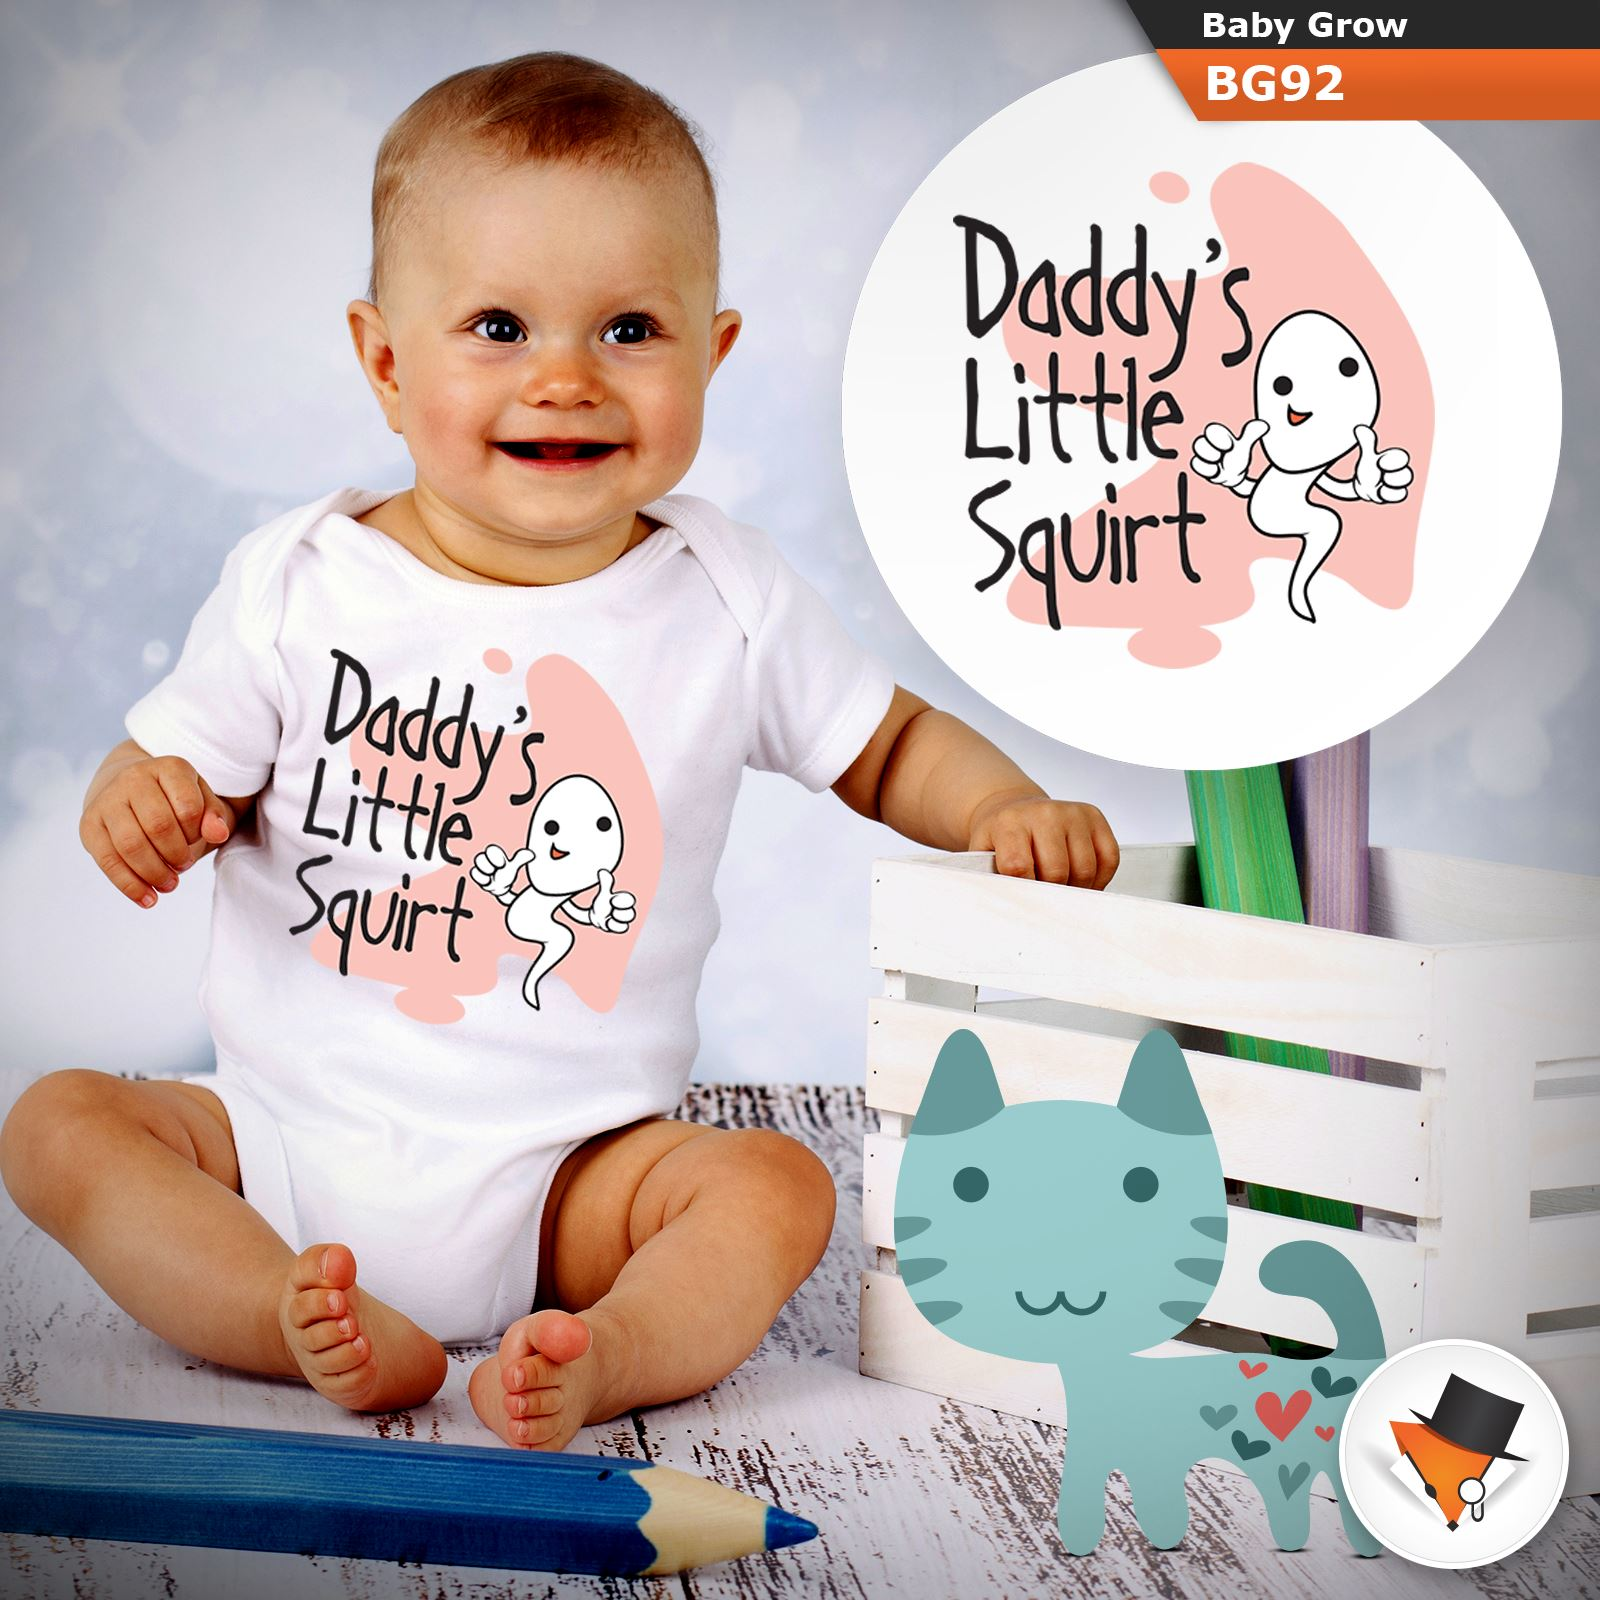 Daddys Lil Squirt Babygrow Baby Vest Funny Gift